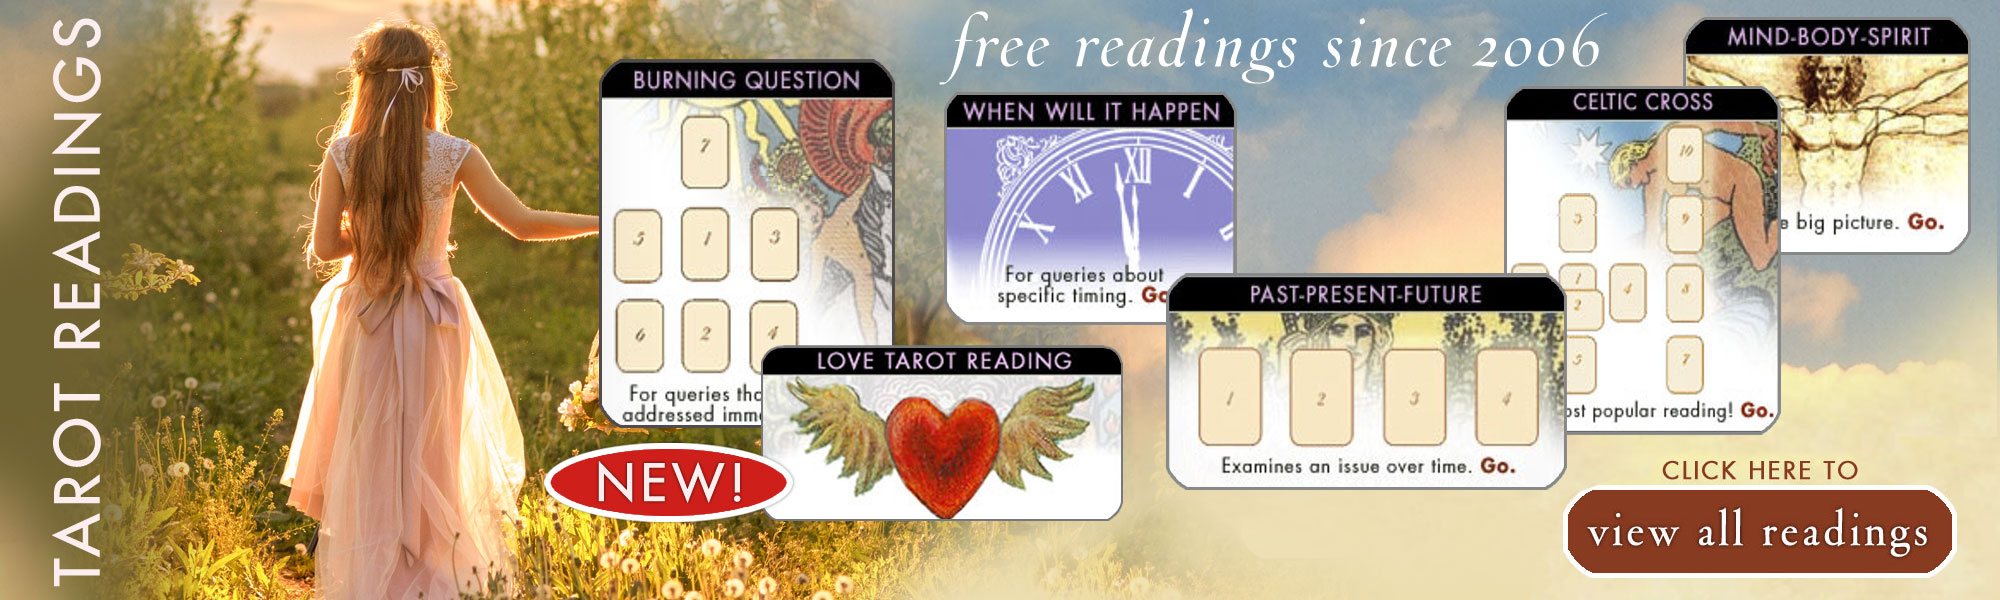 Free Tarot Readings featuring the Goddess Tarot